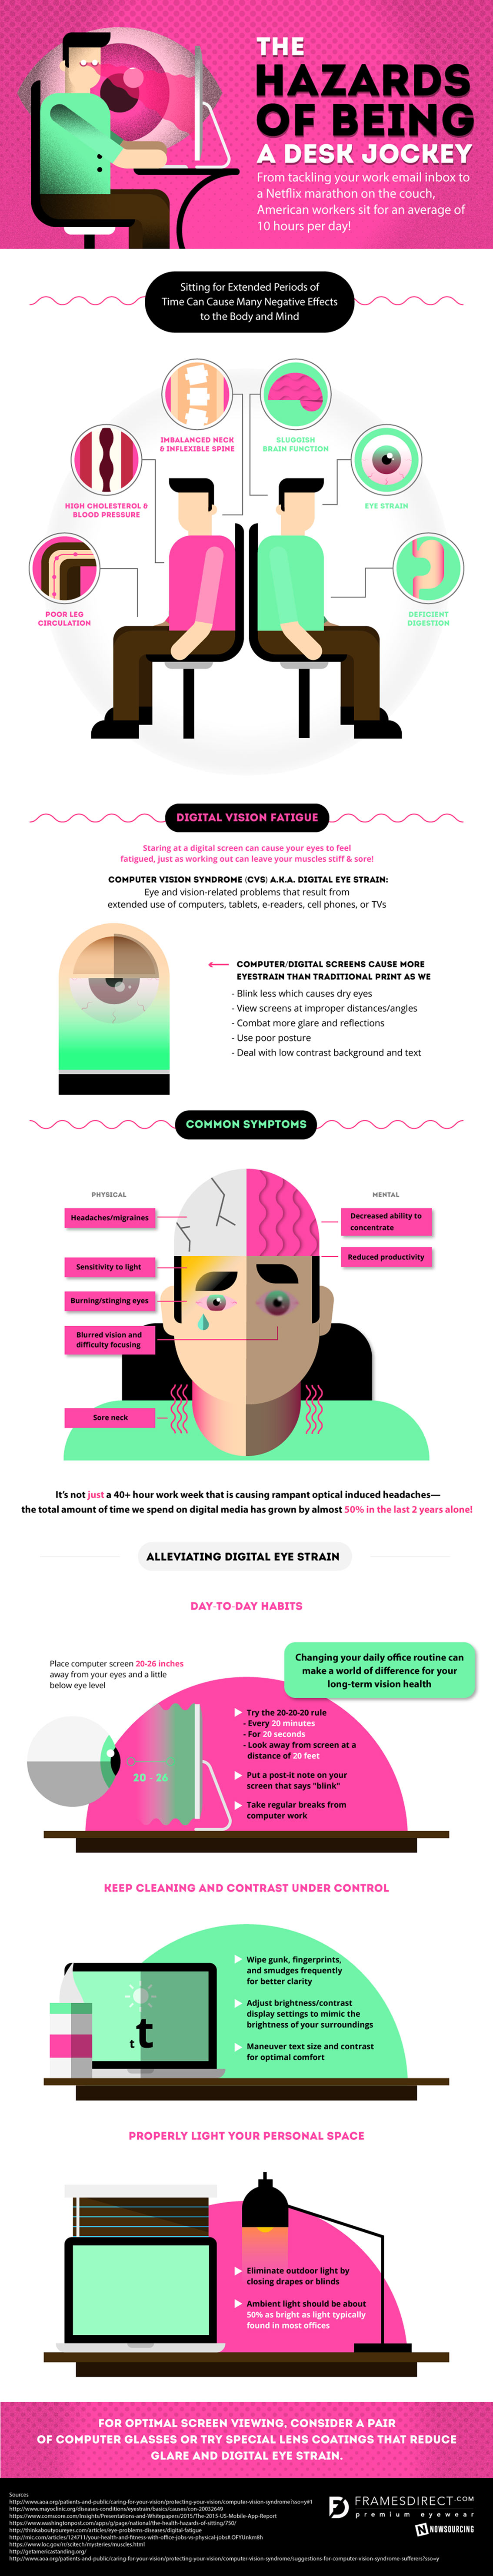 Computer Vision Syndrome Symptoms and Prevention Infographic